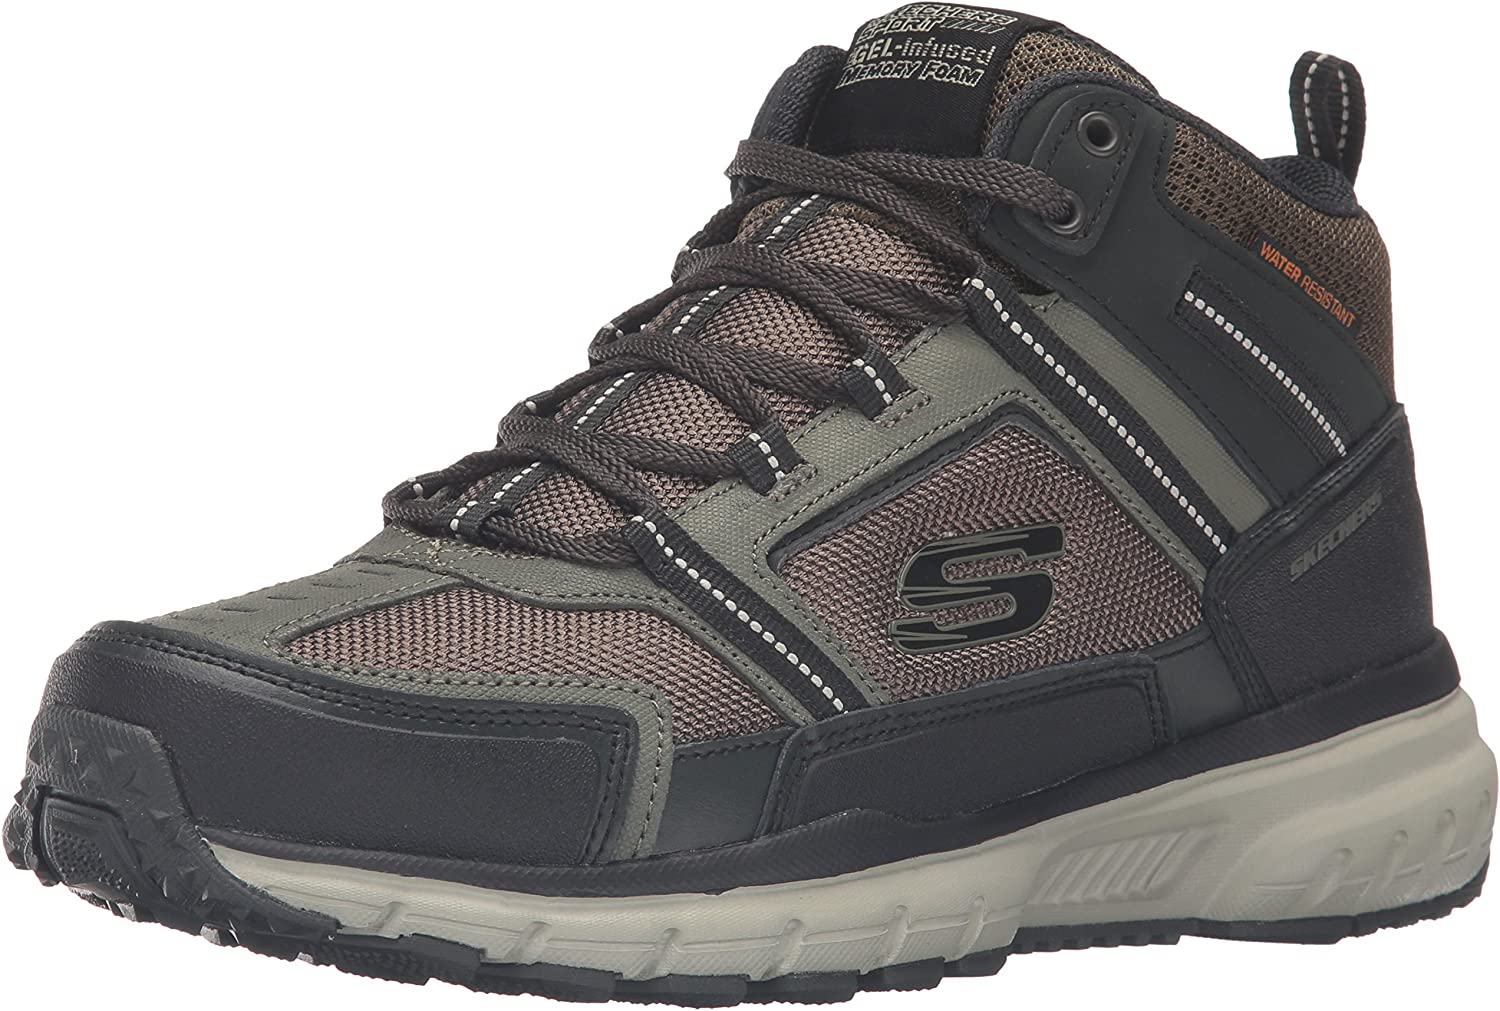 Skechers Sport Men's Geo Trek Oxford Sneaker